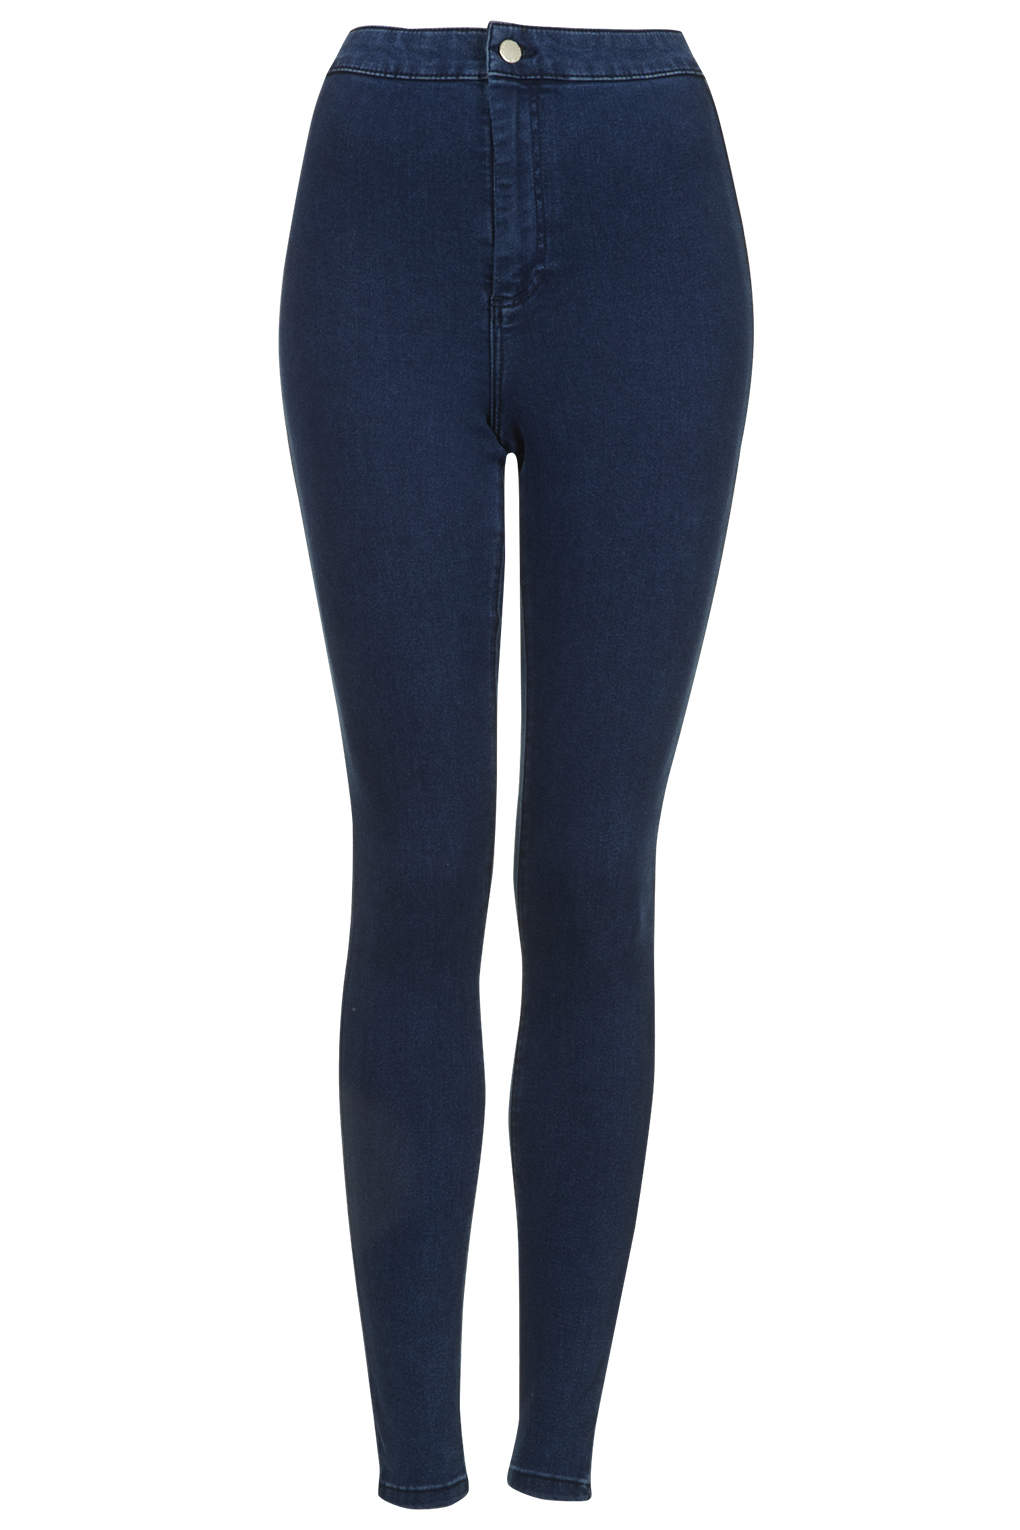 Cheap dark high waisted jeans – Global trend jeans models